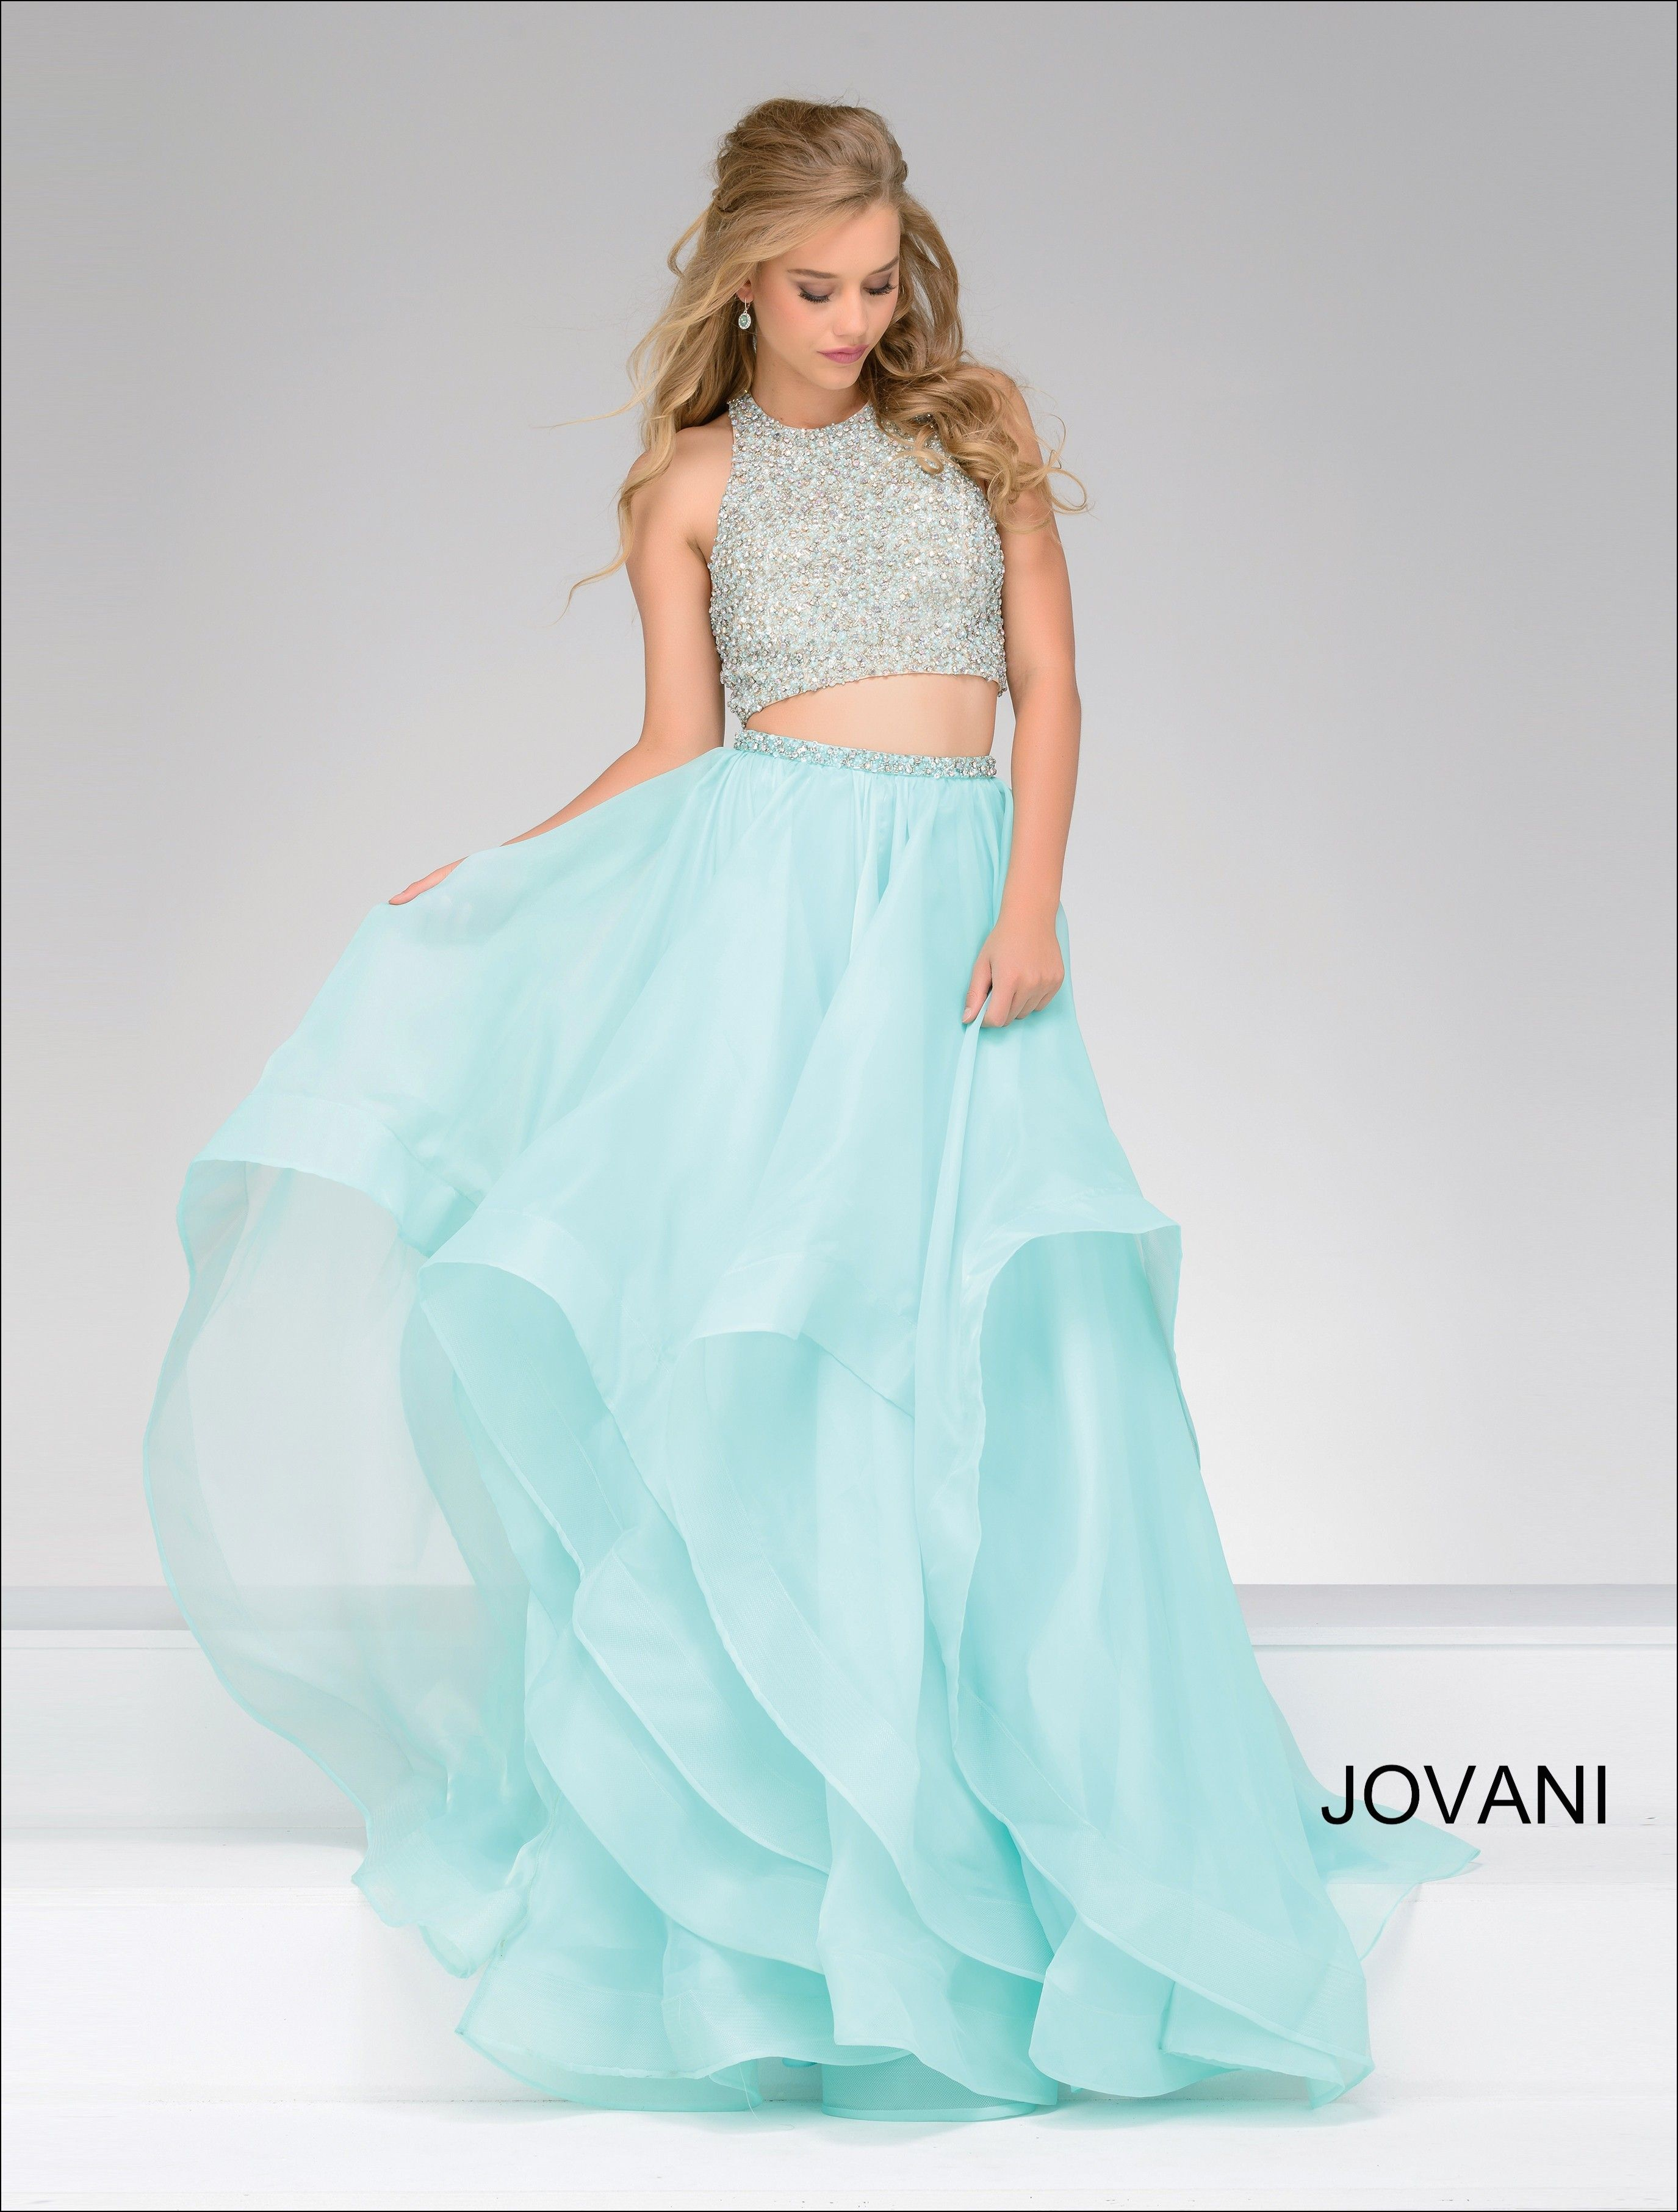 Unusual Prom Dresses In South Florida Contemporary - Wedding Ideas ...